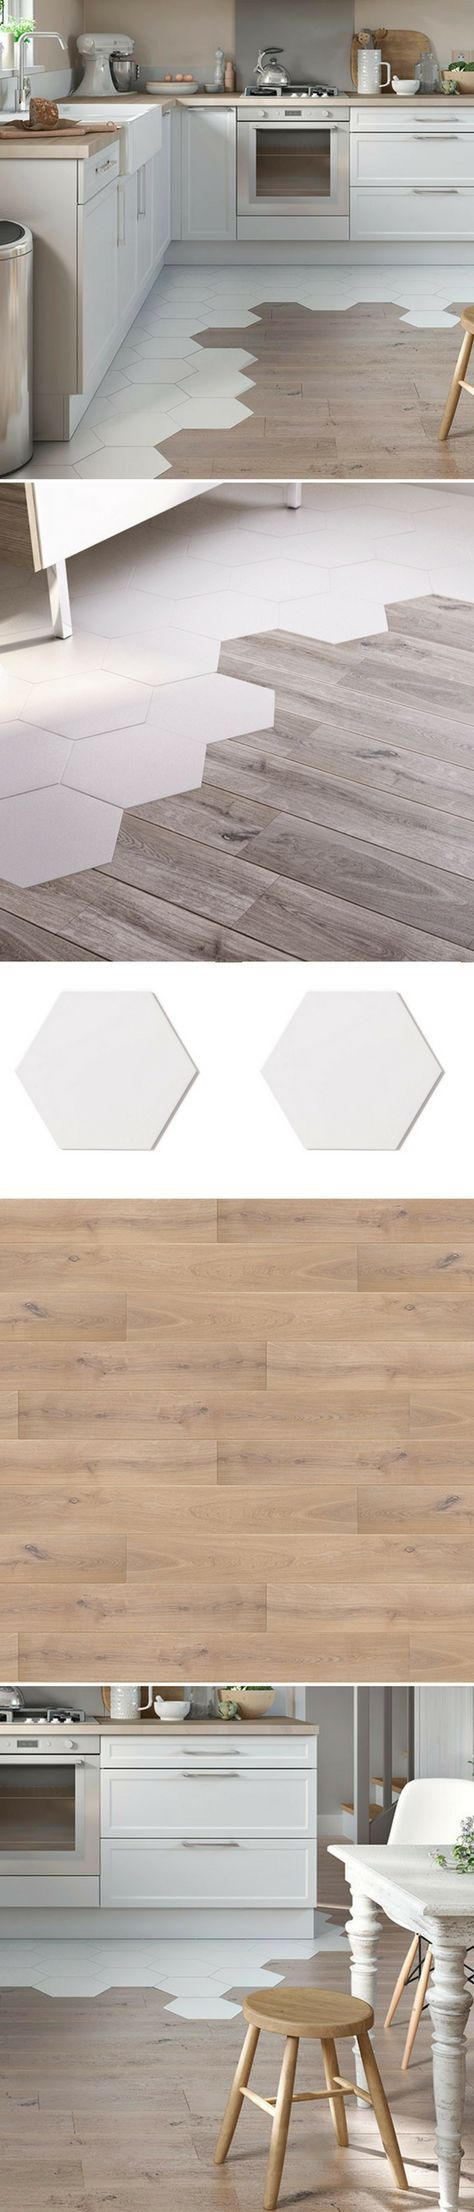 Parquet Tiles Tile Wood Flooring Kitchen Floors White Light Brick Bathroom Diy Easy